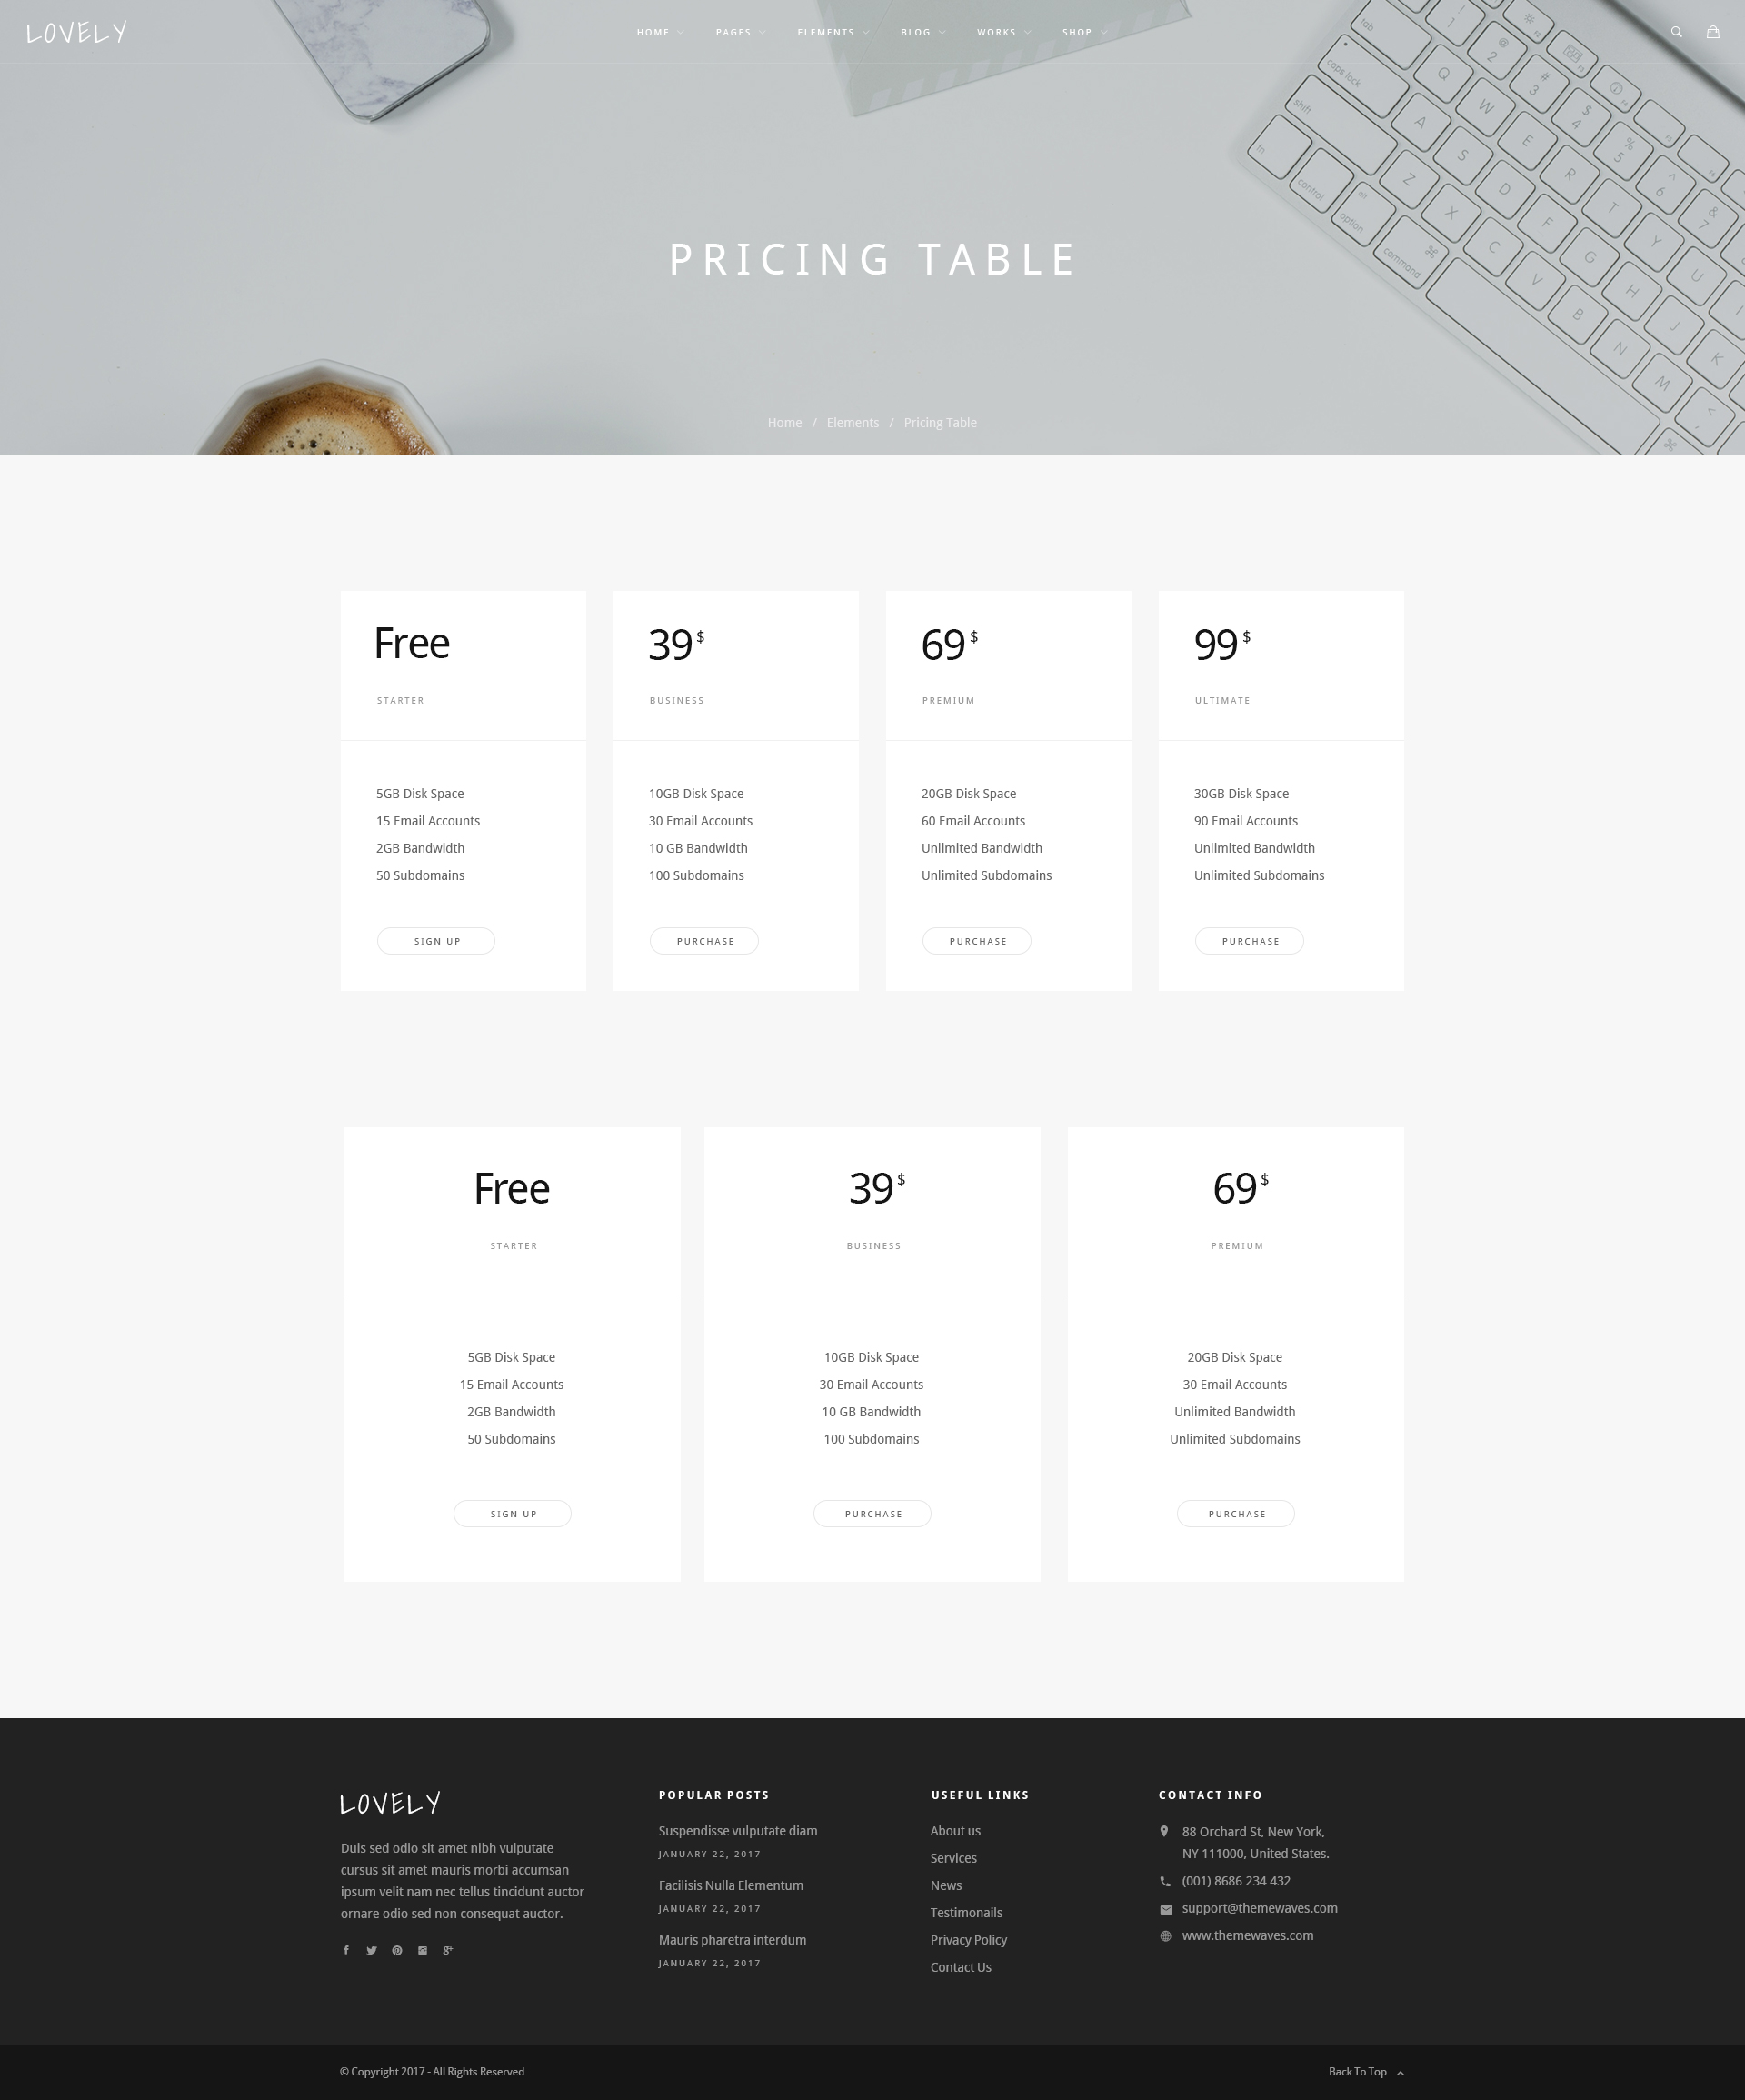 Lovely Creative Multi Purpose Psd Template By Playskull Themeforest In Blog Comments 0 Email This Tags Diagram Bathroom Sink Preview 67 Elements Team 68 Testimonial 69 Timeline 70 Grid 2